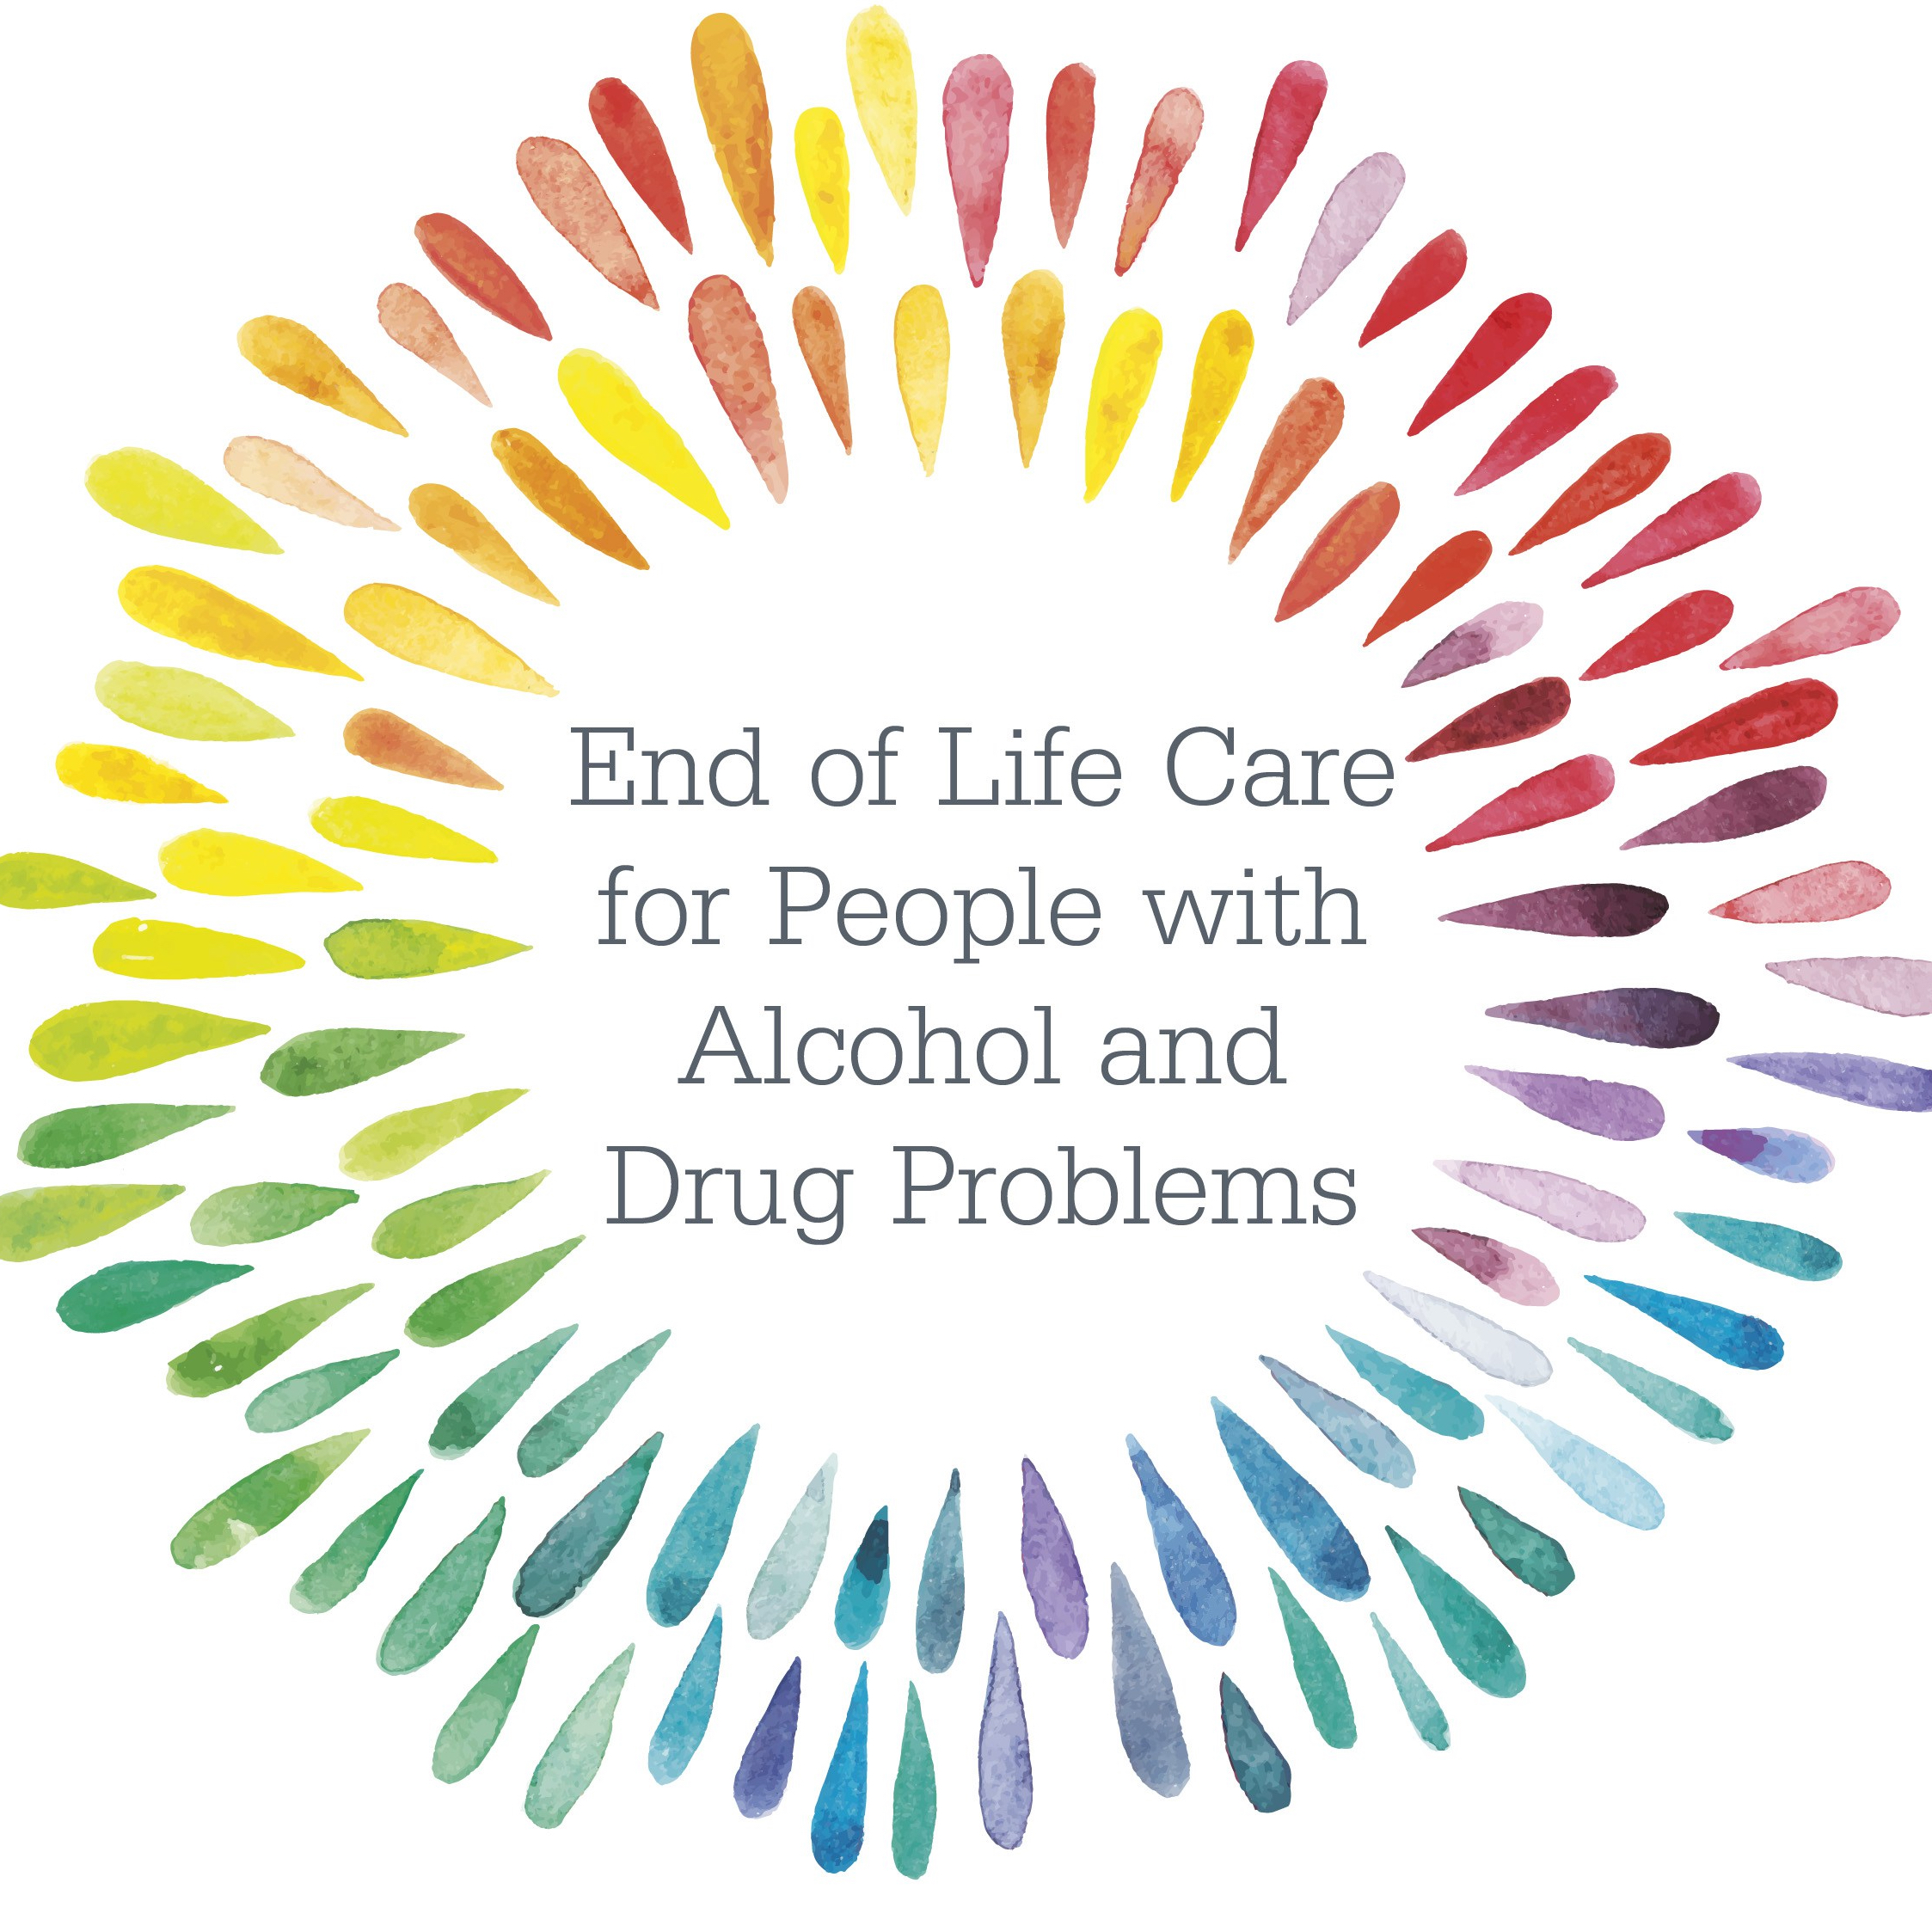 End of life care for people with problematic substance use